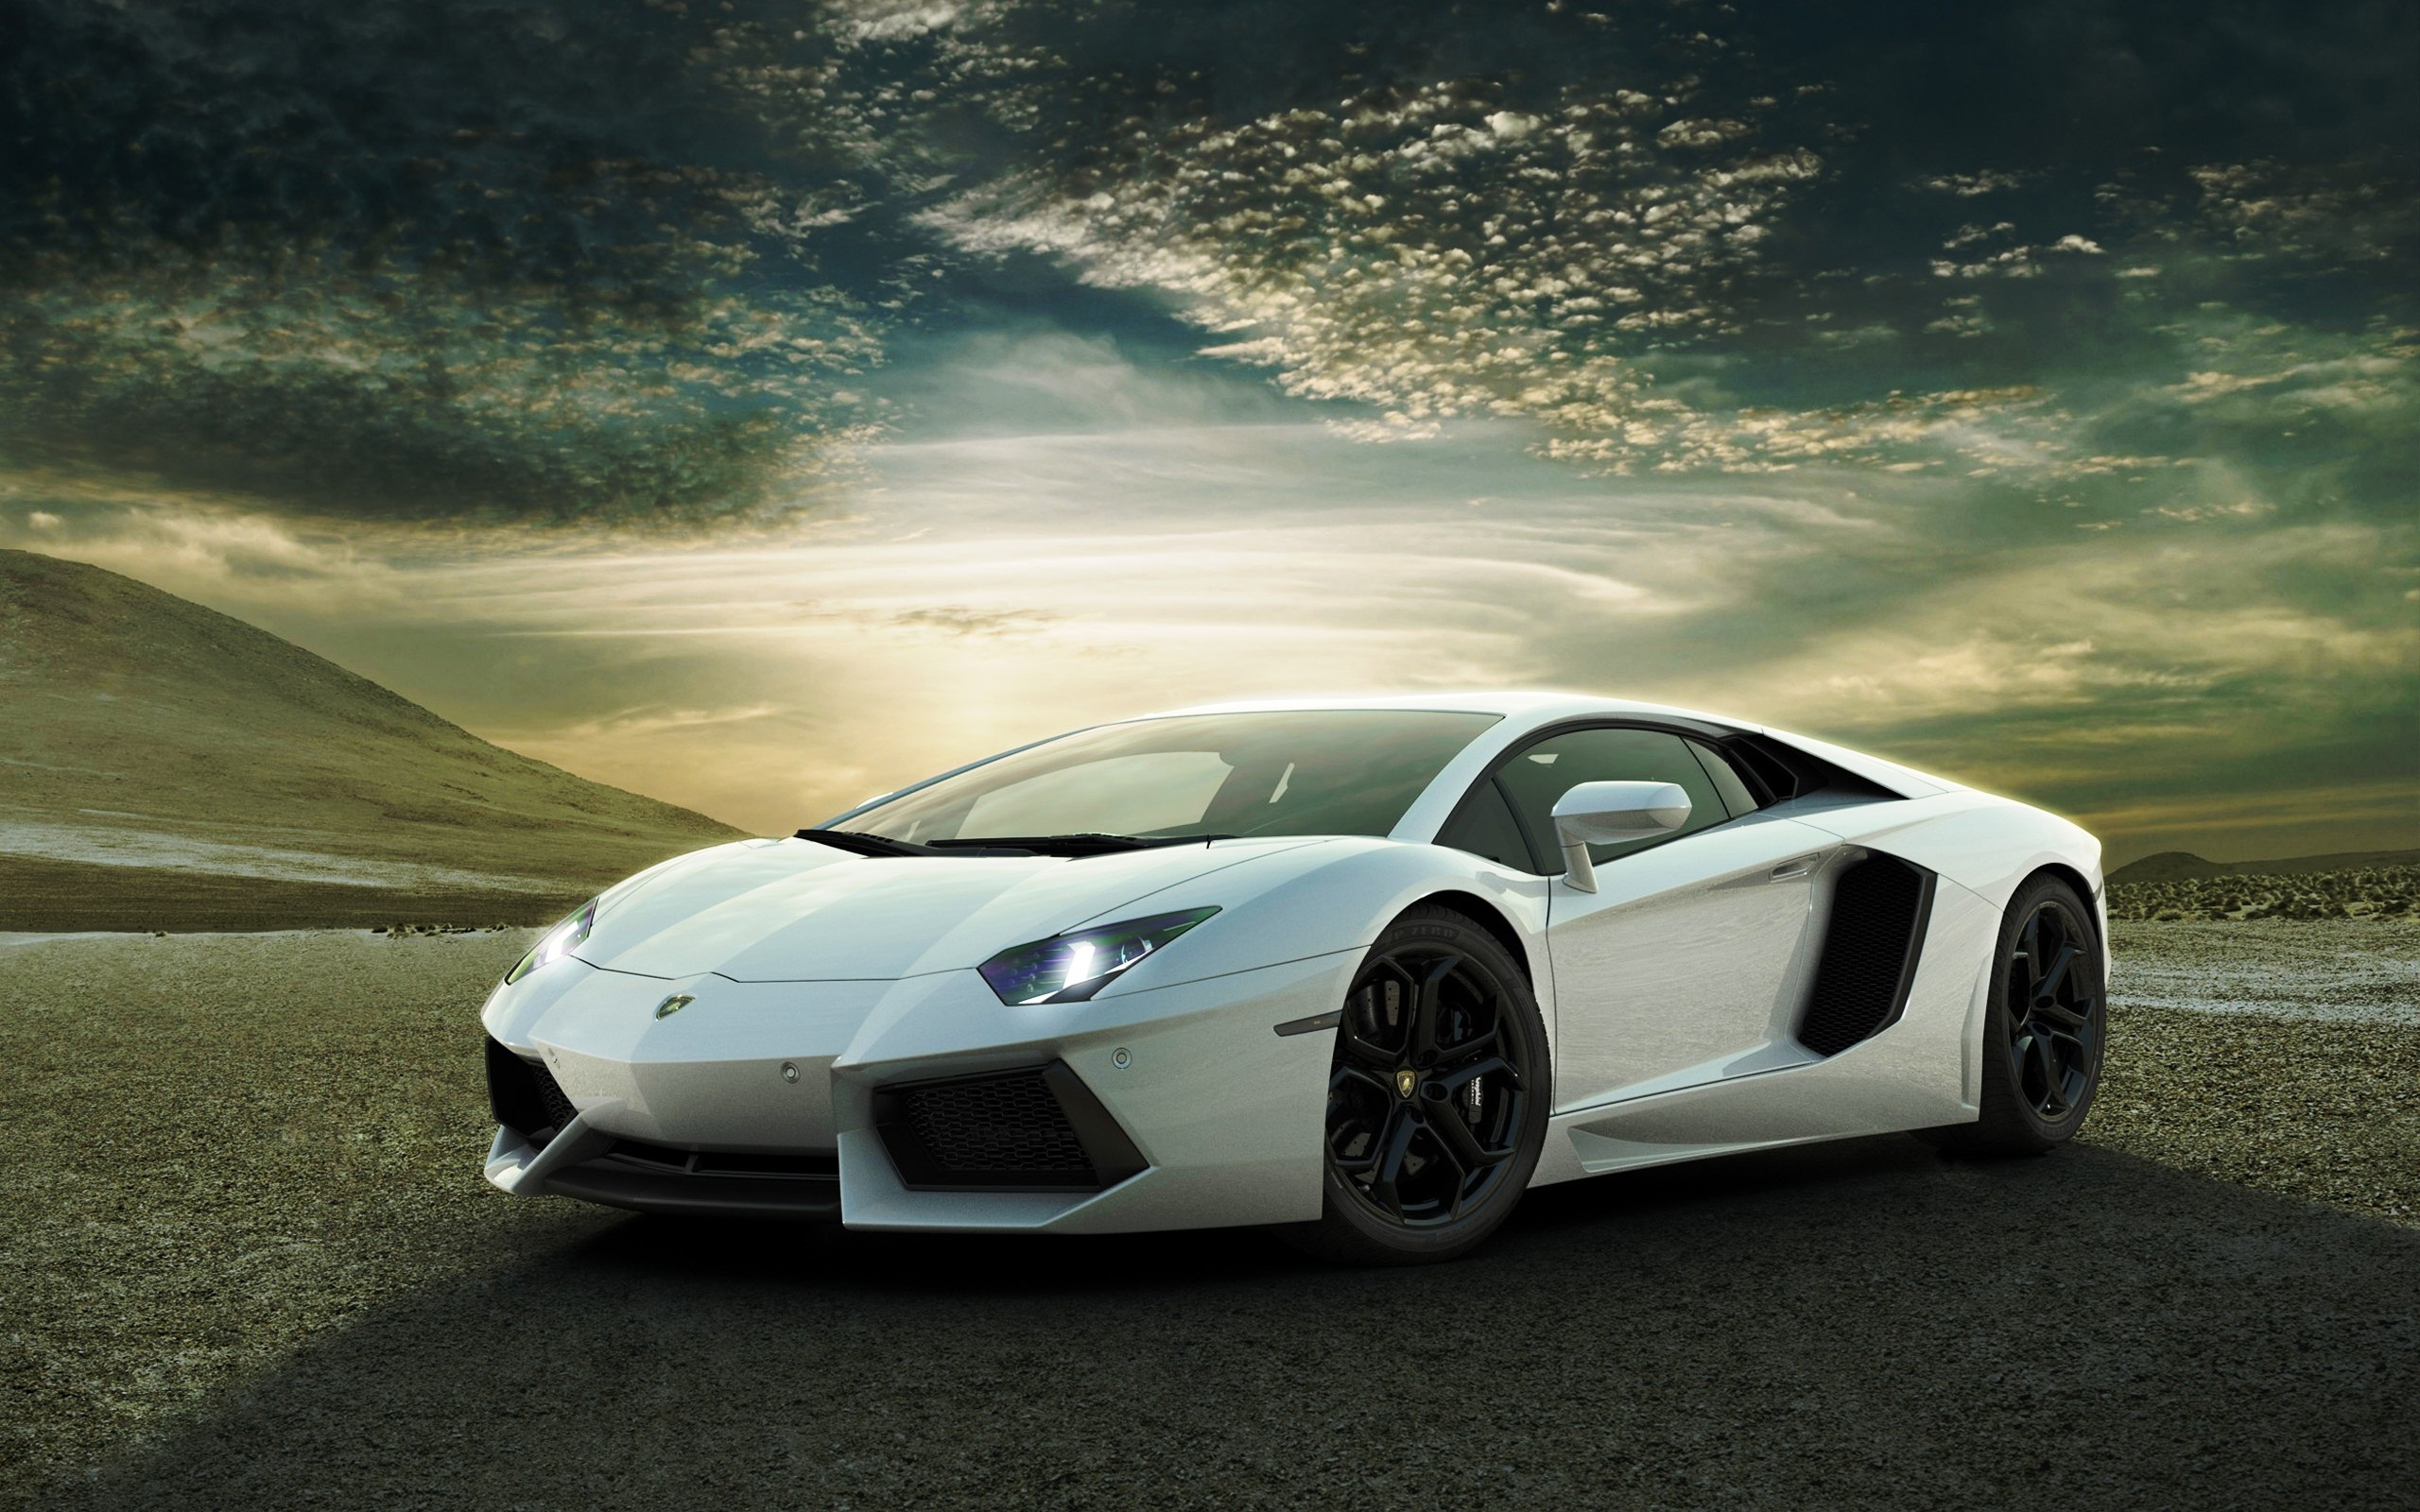 White Lamborghini Aventador HD Wallpaper